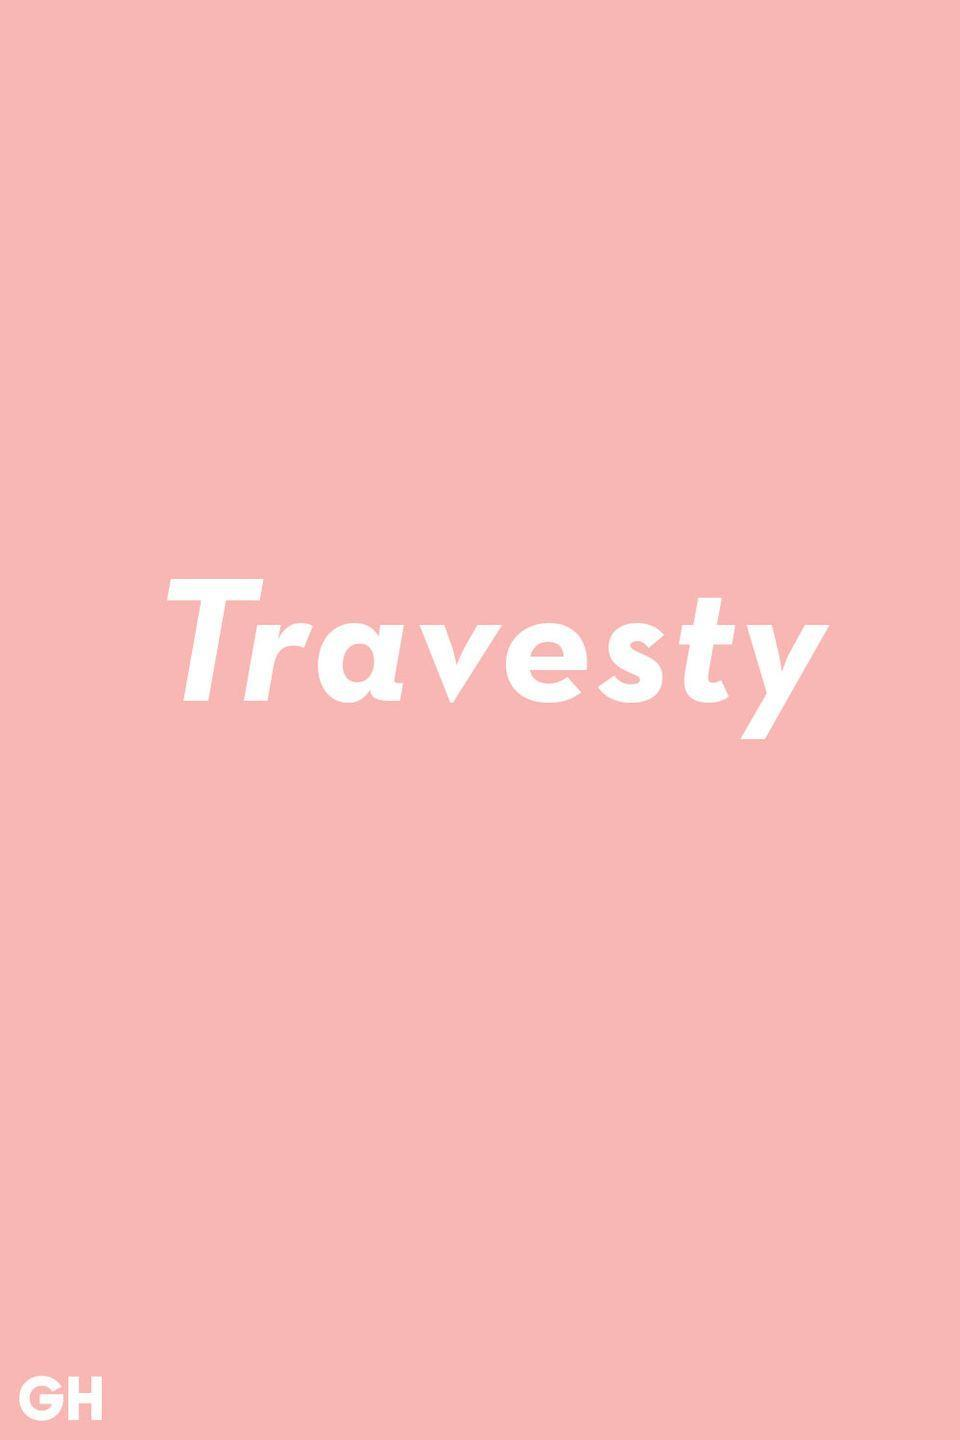 <p>A travesty is not a tragedy. It's a fake or poor imitation.</p>